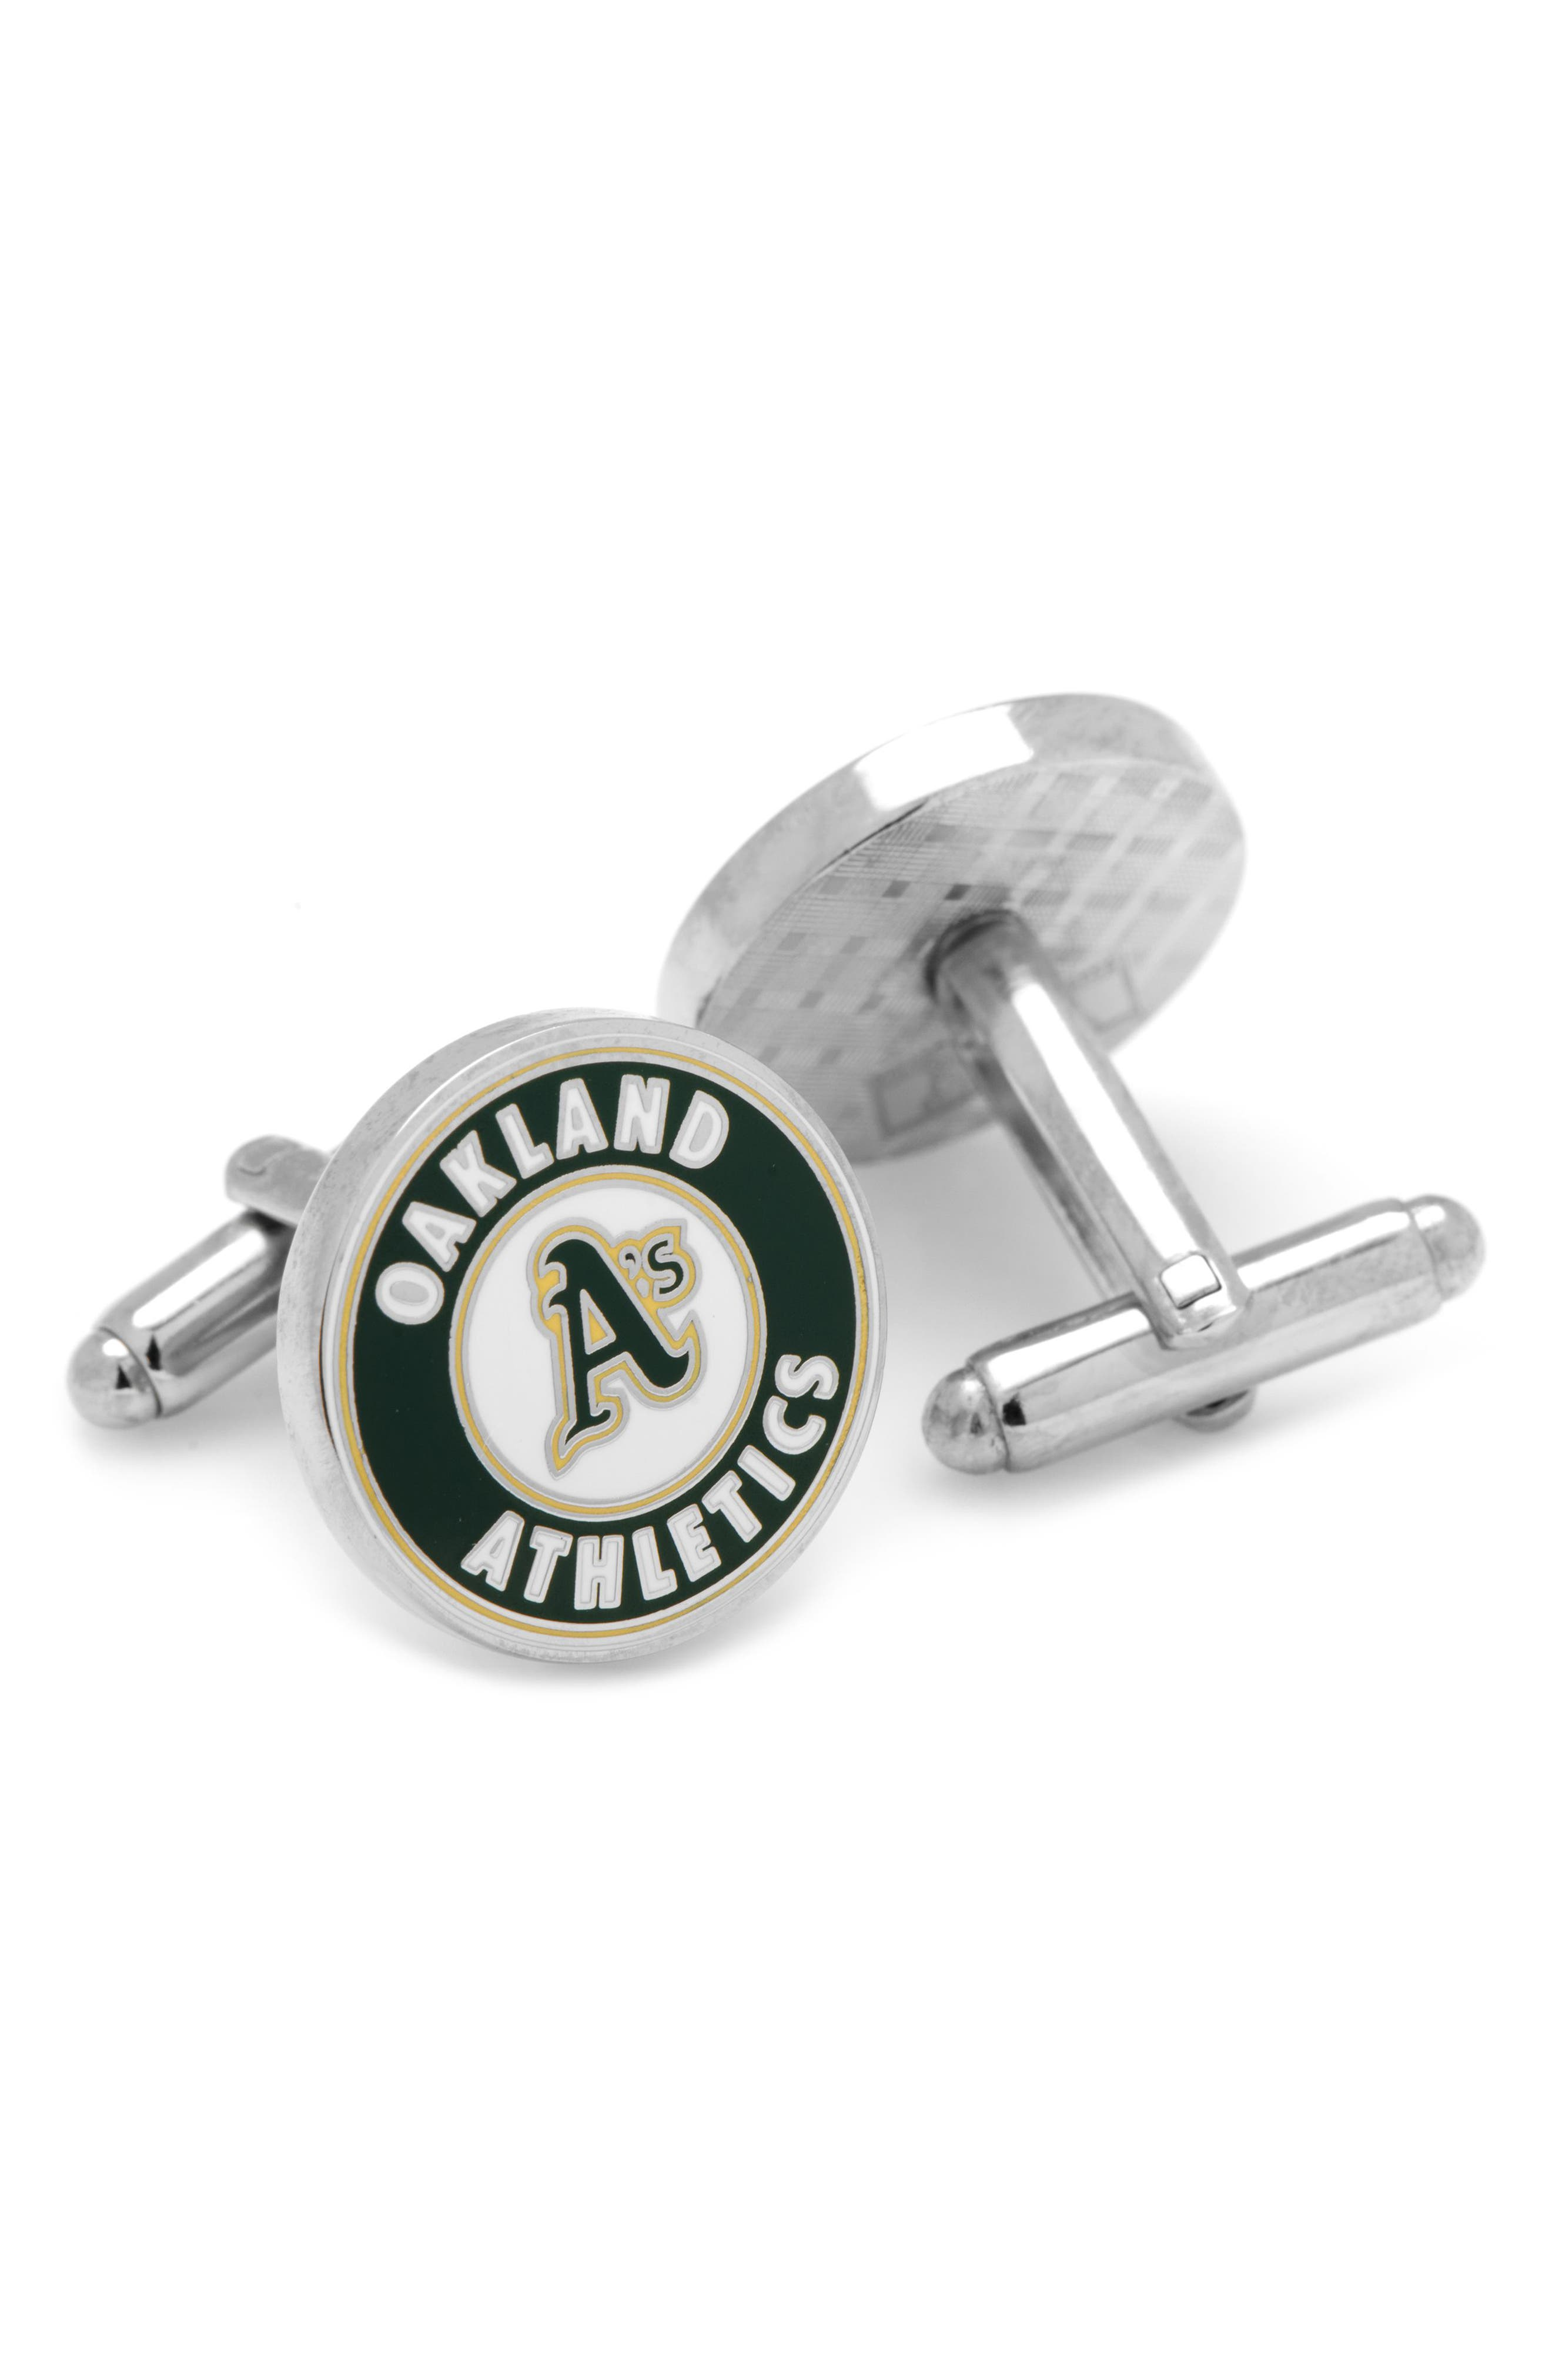 Oakland Athletics Cuff Links,                             Alternate thumbnail 2, color,                             Green